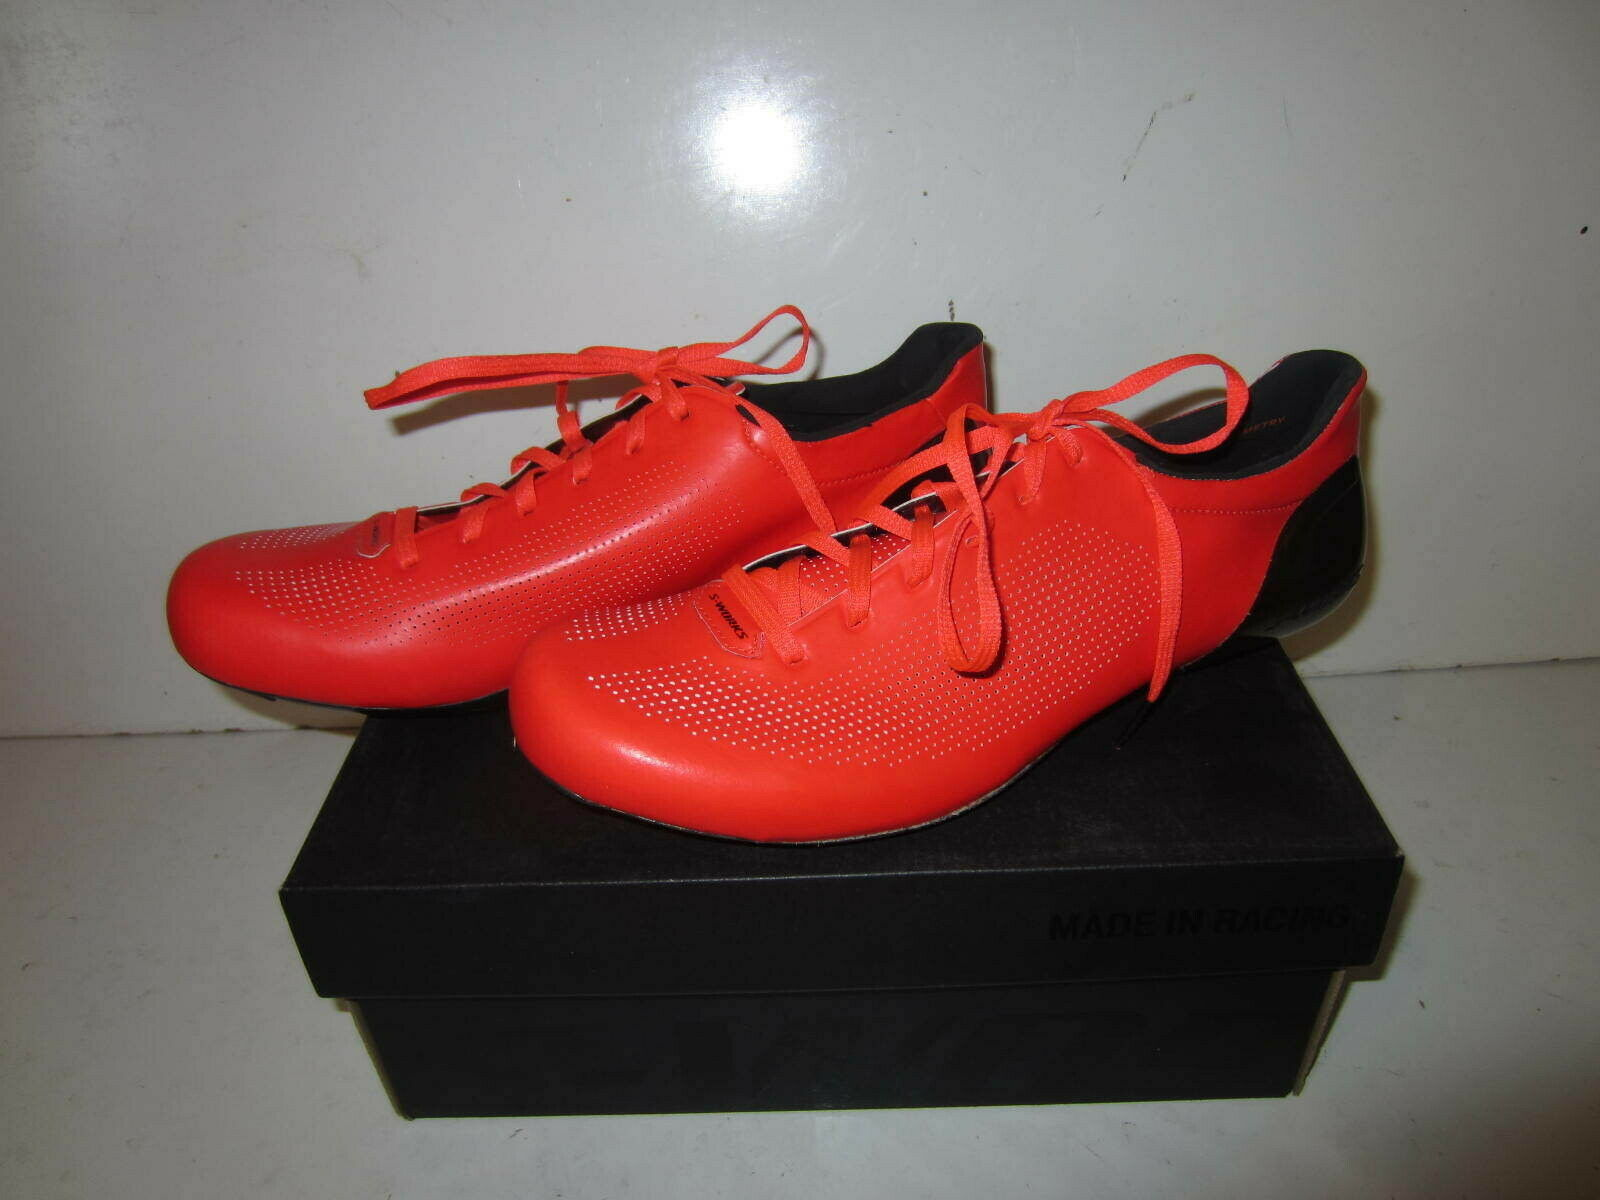 NEW - Specialized S-Works Sub-6 Road Shoes, Rocket Red (Select Size)